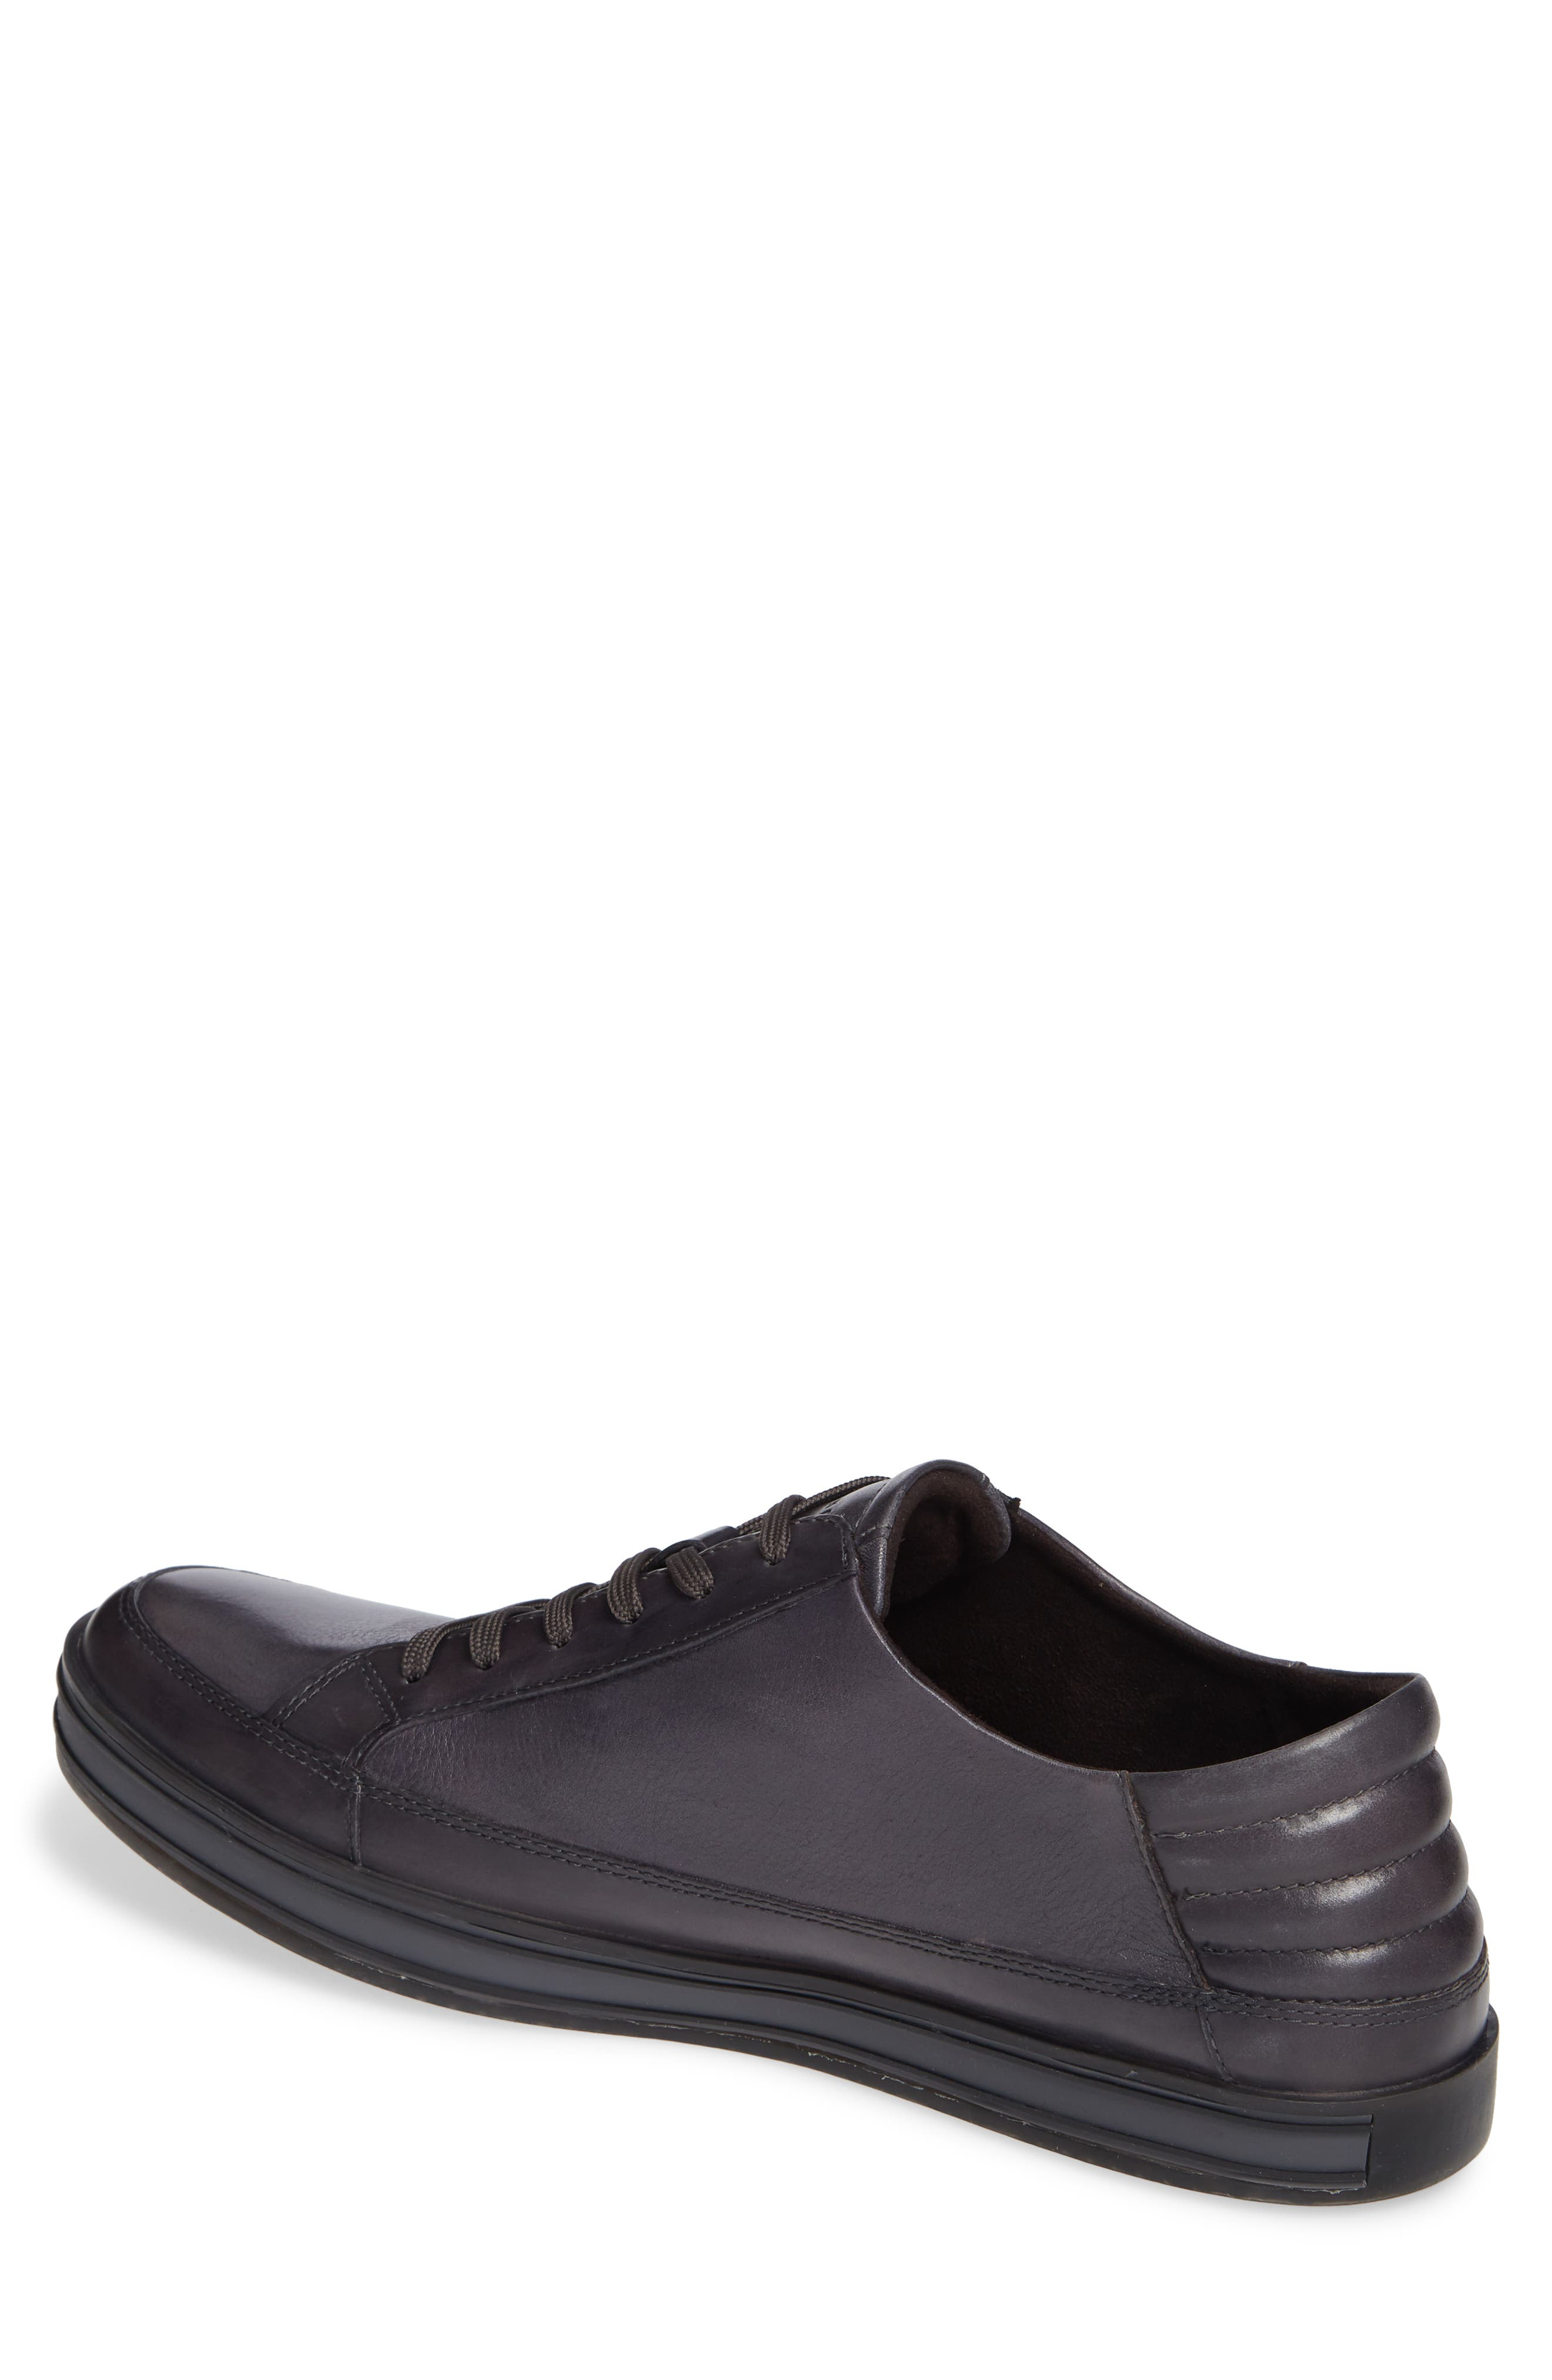 KENNETH COLE NEW YORK, Brand Stand Low Top Sneaker, Alternate thumbnail 2, color, GREY TUMBLED LEATHER/ LEATHER